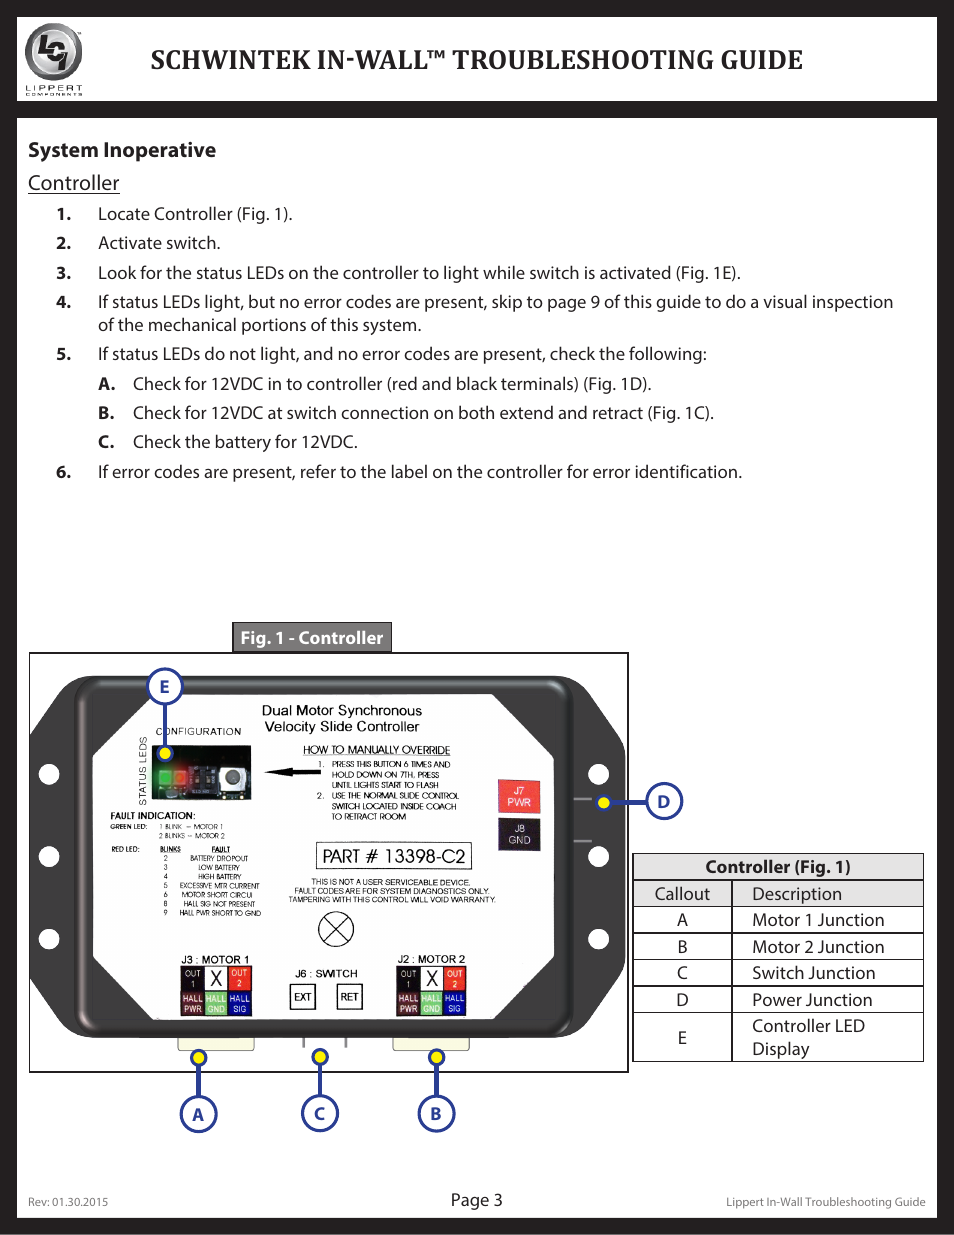 Georgetown Wiring Diagram Not Lossing Symbols For Display Images Gallery